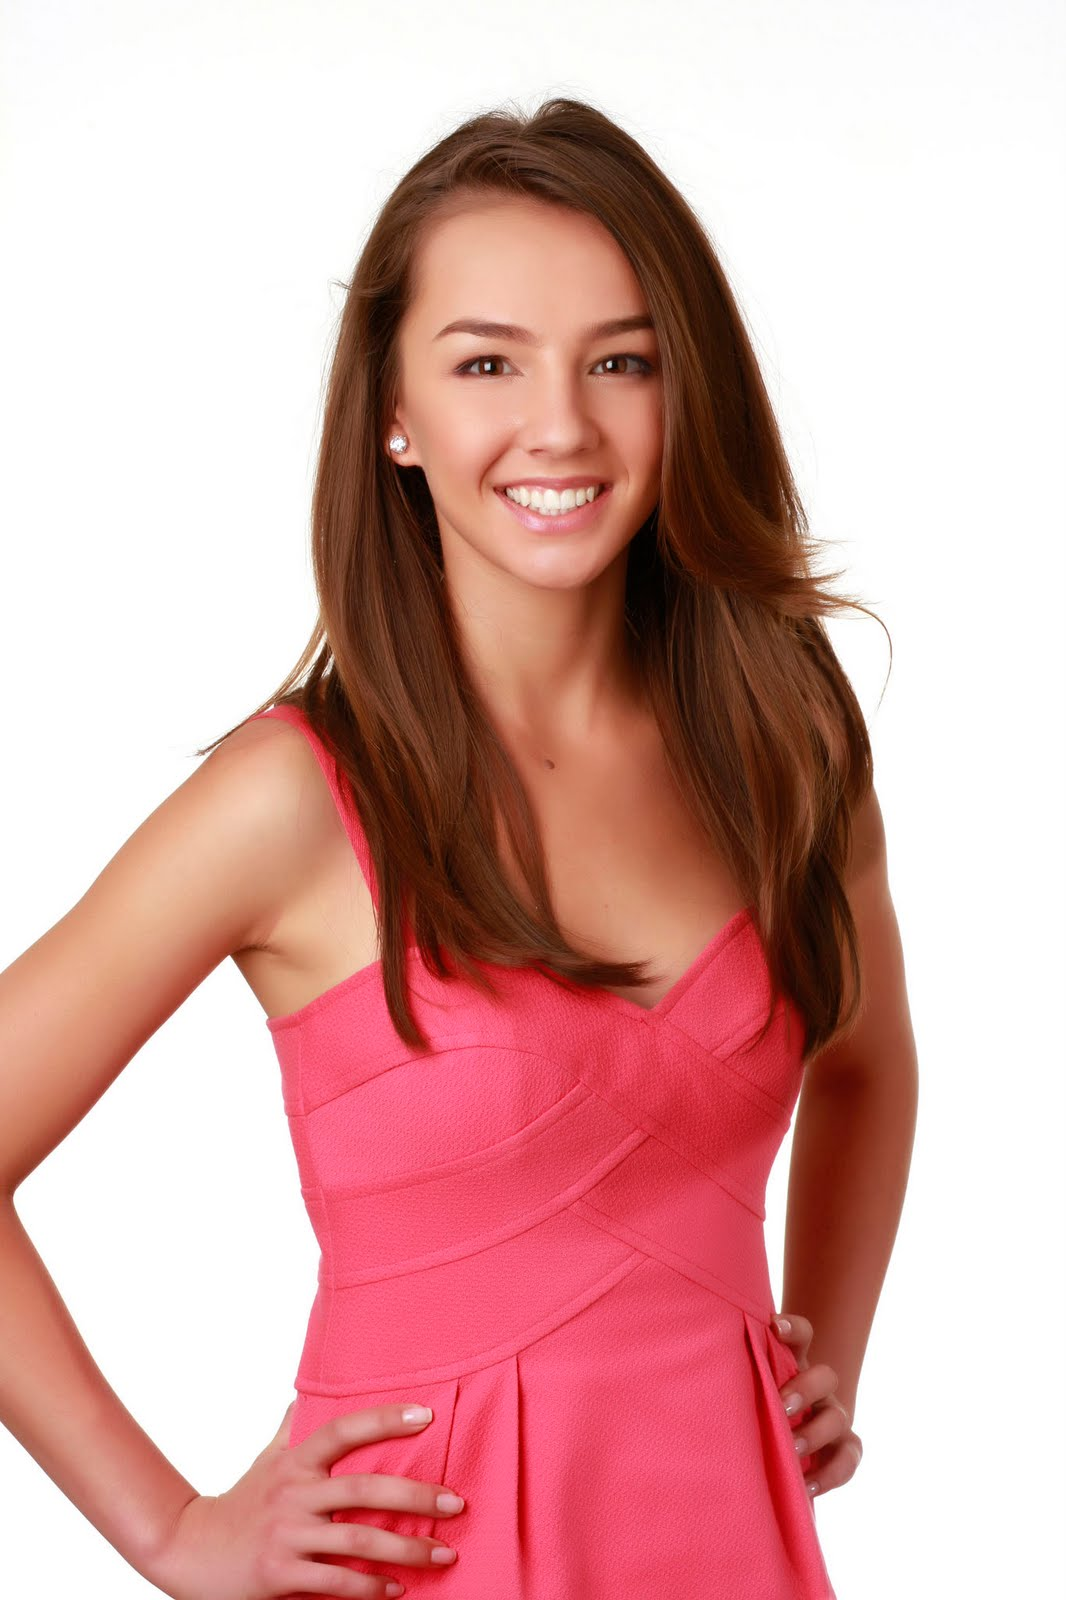 Download this Here Are Some Photos Actress Lexi Ainsworth Kristina Davis picture